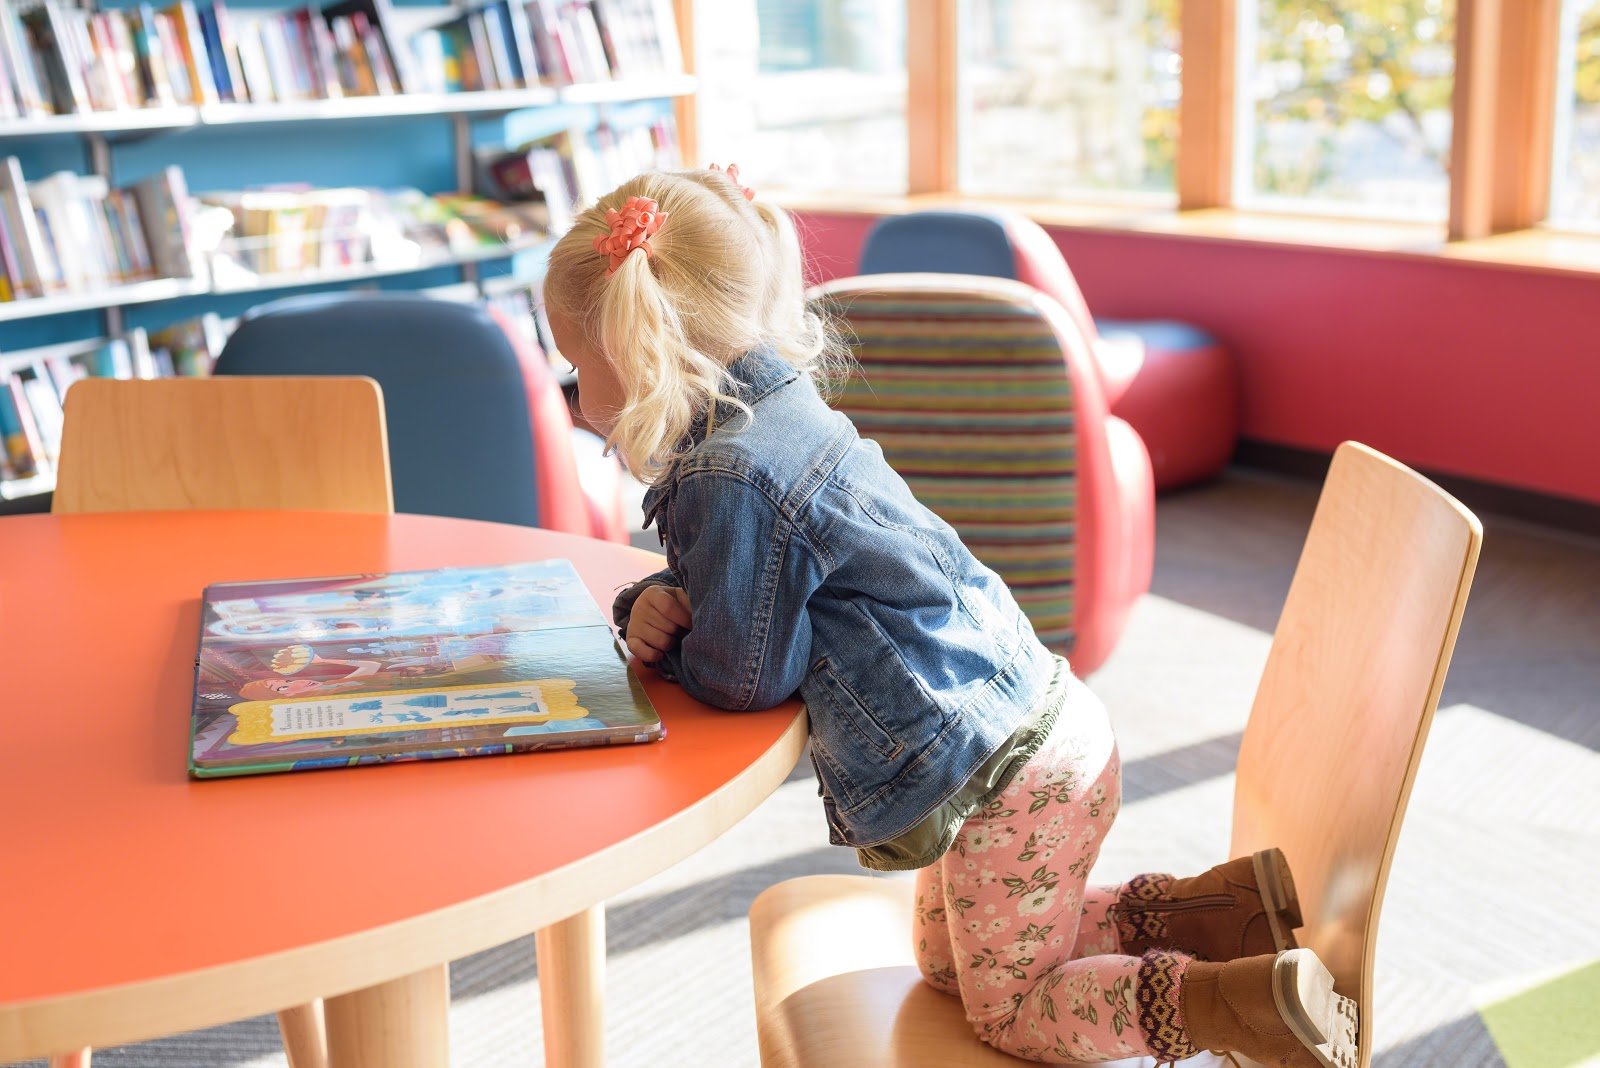 Little girl kneeling on a chair and reading a picture book at a round table.